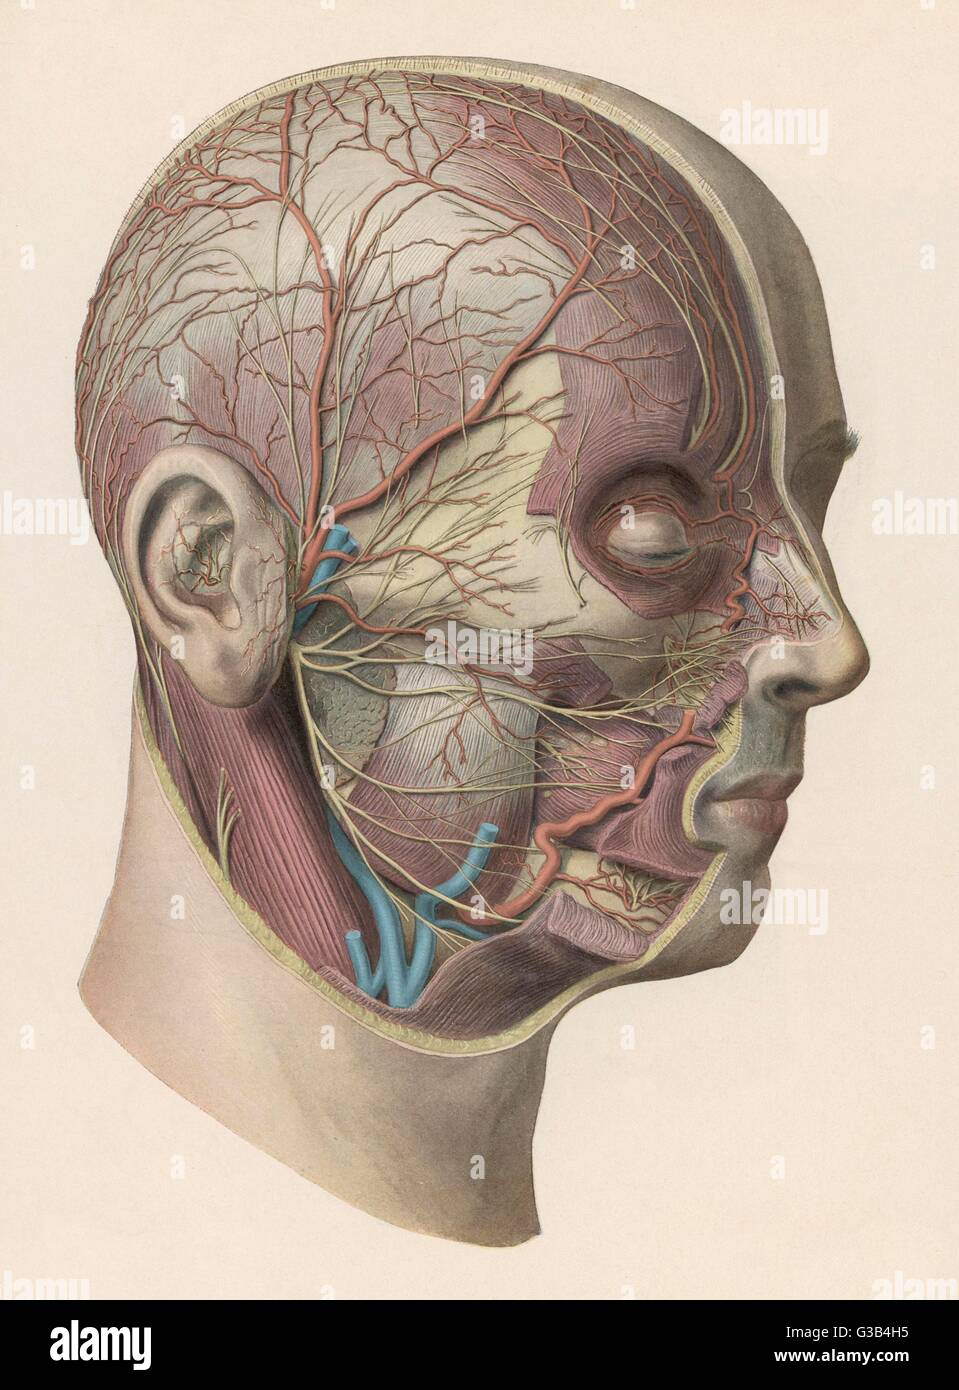 medium resolution of detailed diagram showing muscles and veins inside of the head date circa 1900